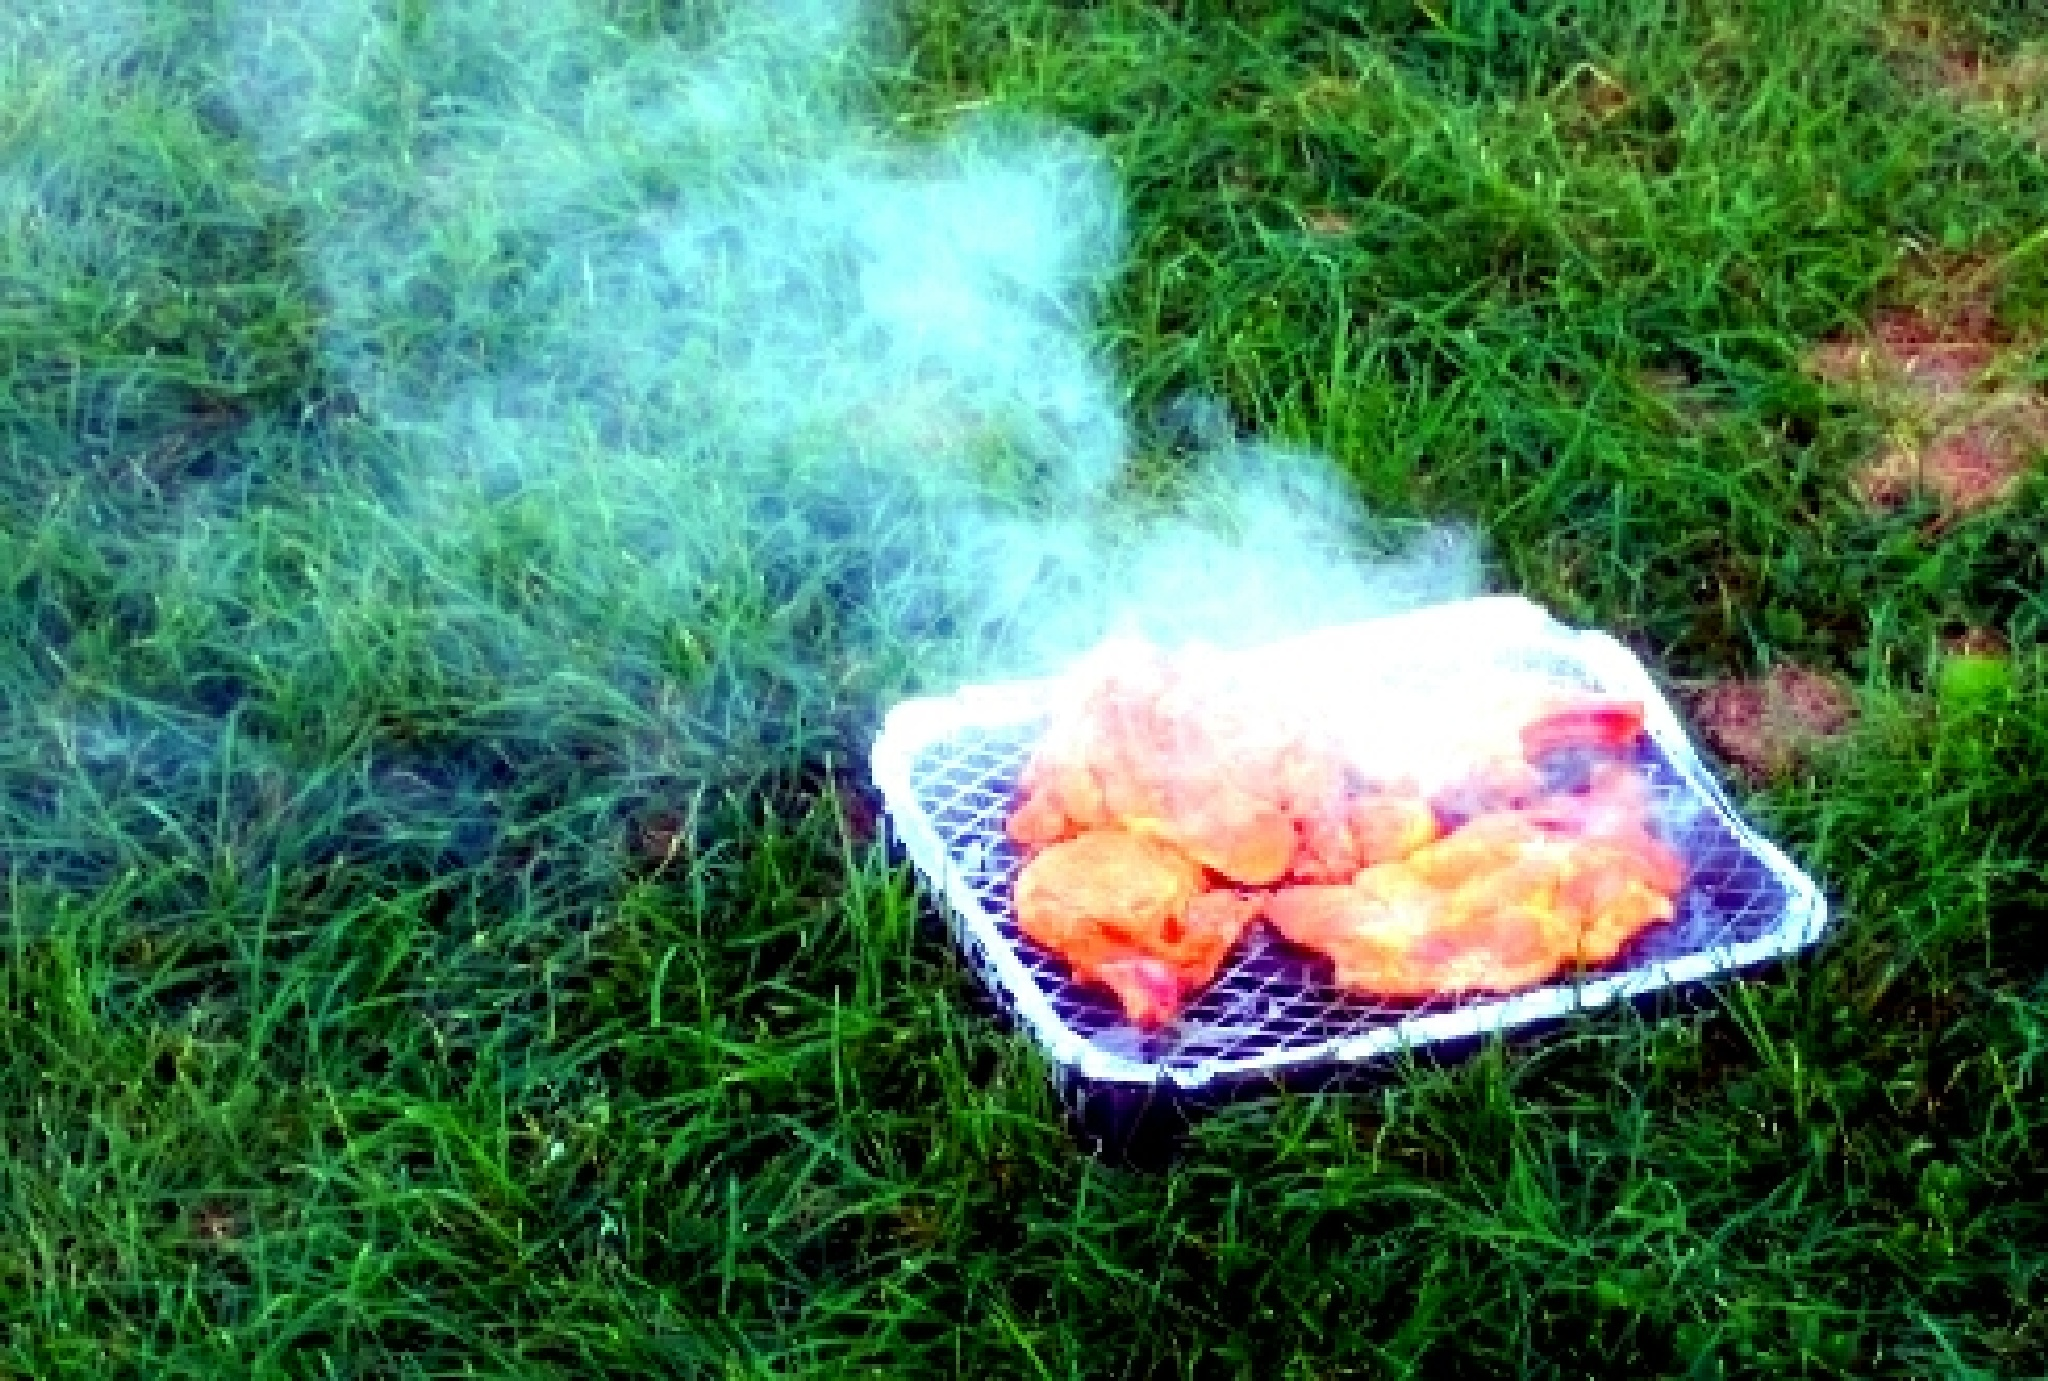 barbecue on the grass.  by Sherlina